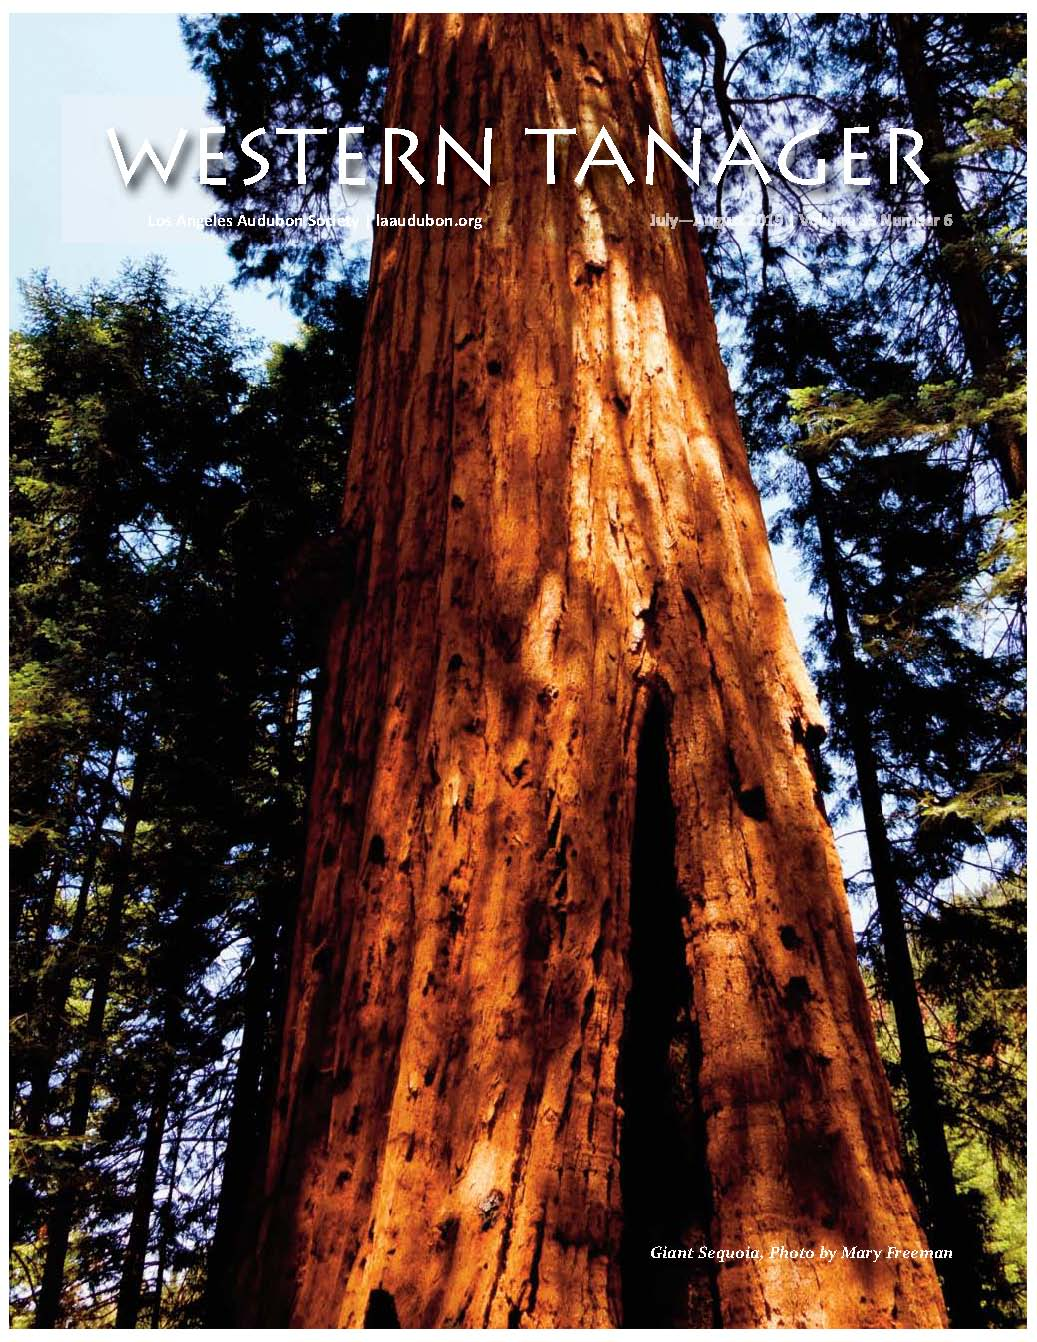 Giant Sequoia, Photo by Mary Freeman